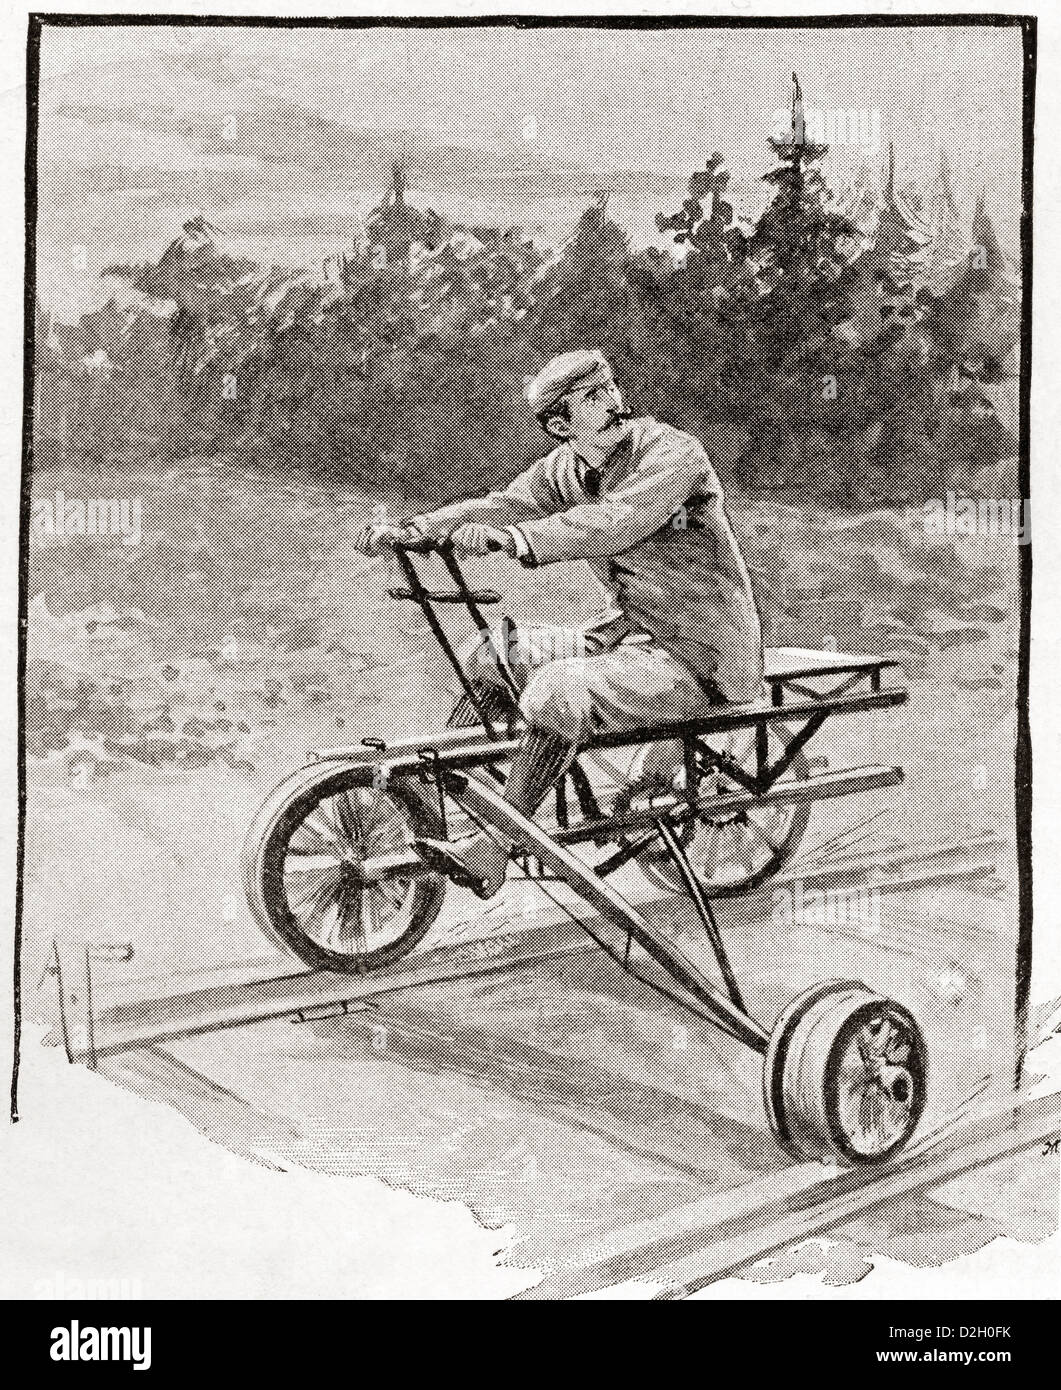 A nineteenth century three wheeled velocipede on a railroad track. - Stock Image